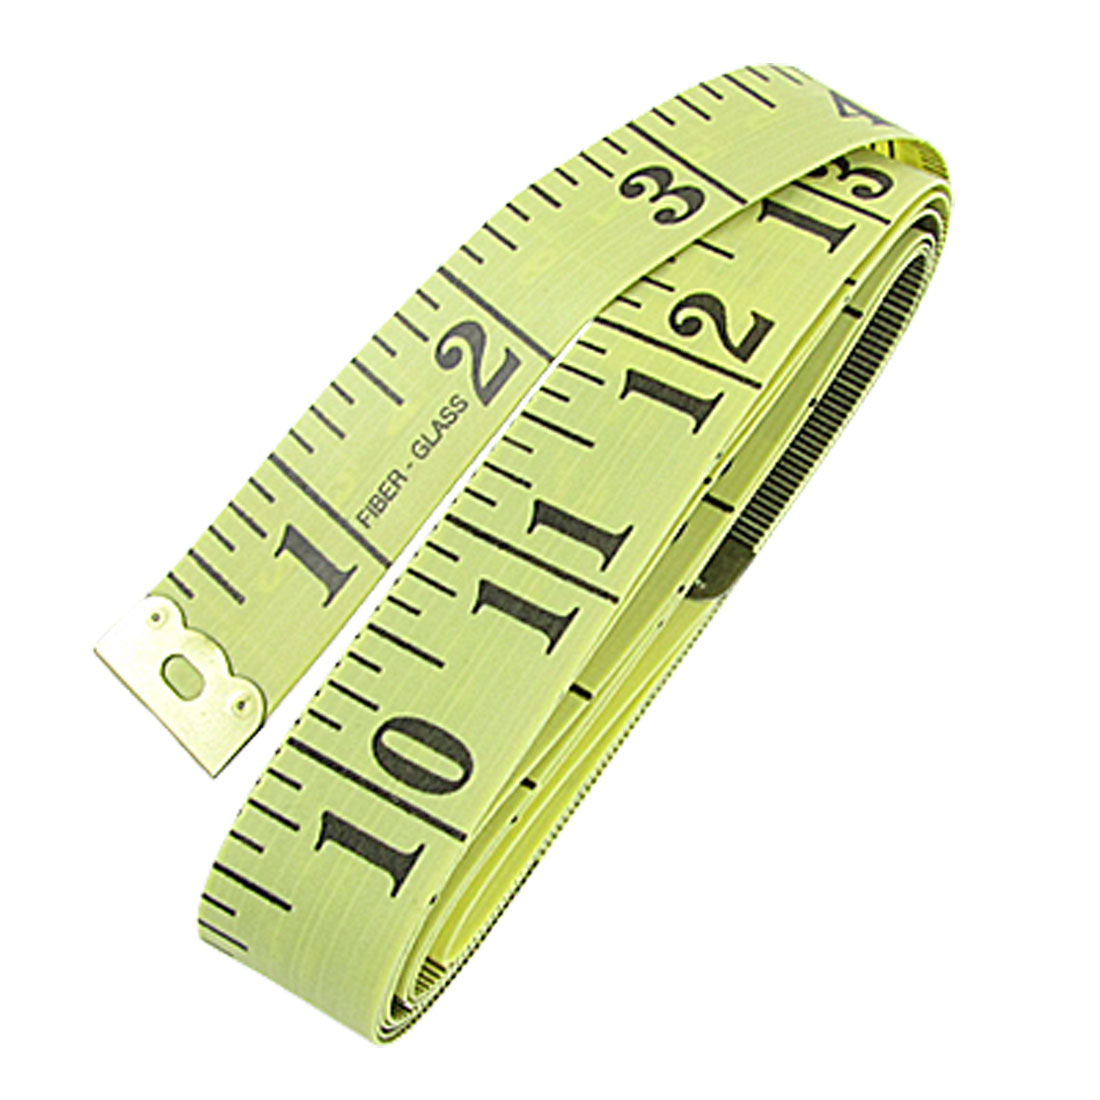 "Unique Bargains Unique Bargains Tailor Yellow Black Flex Tape Measure Cloth Ruler 60"" 150cm"